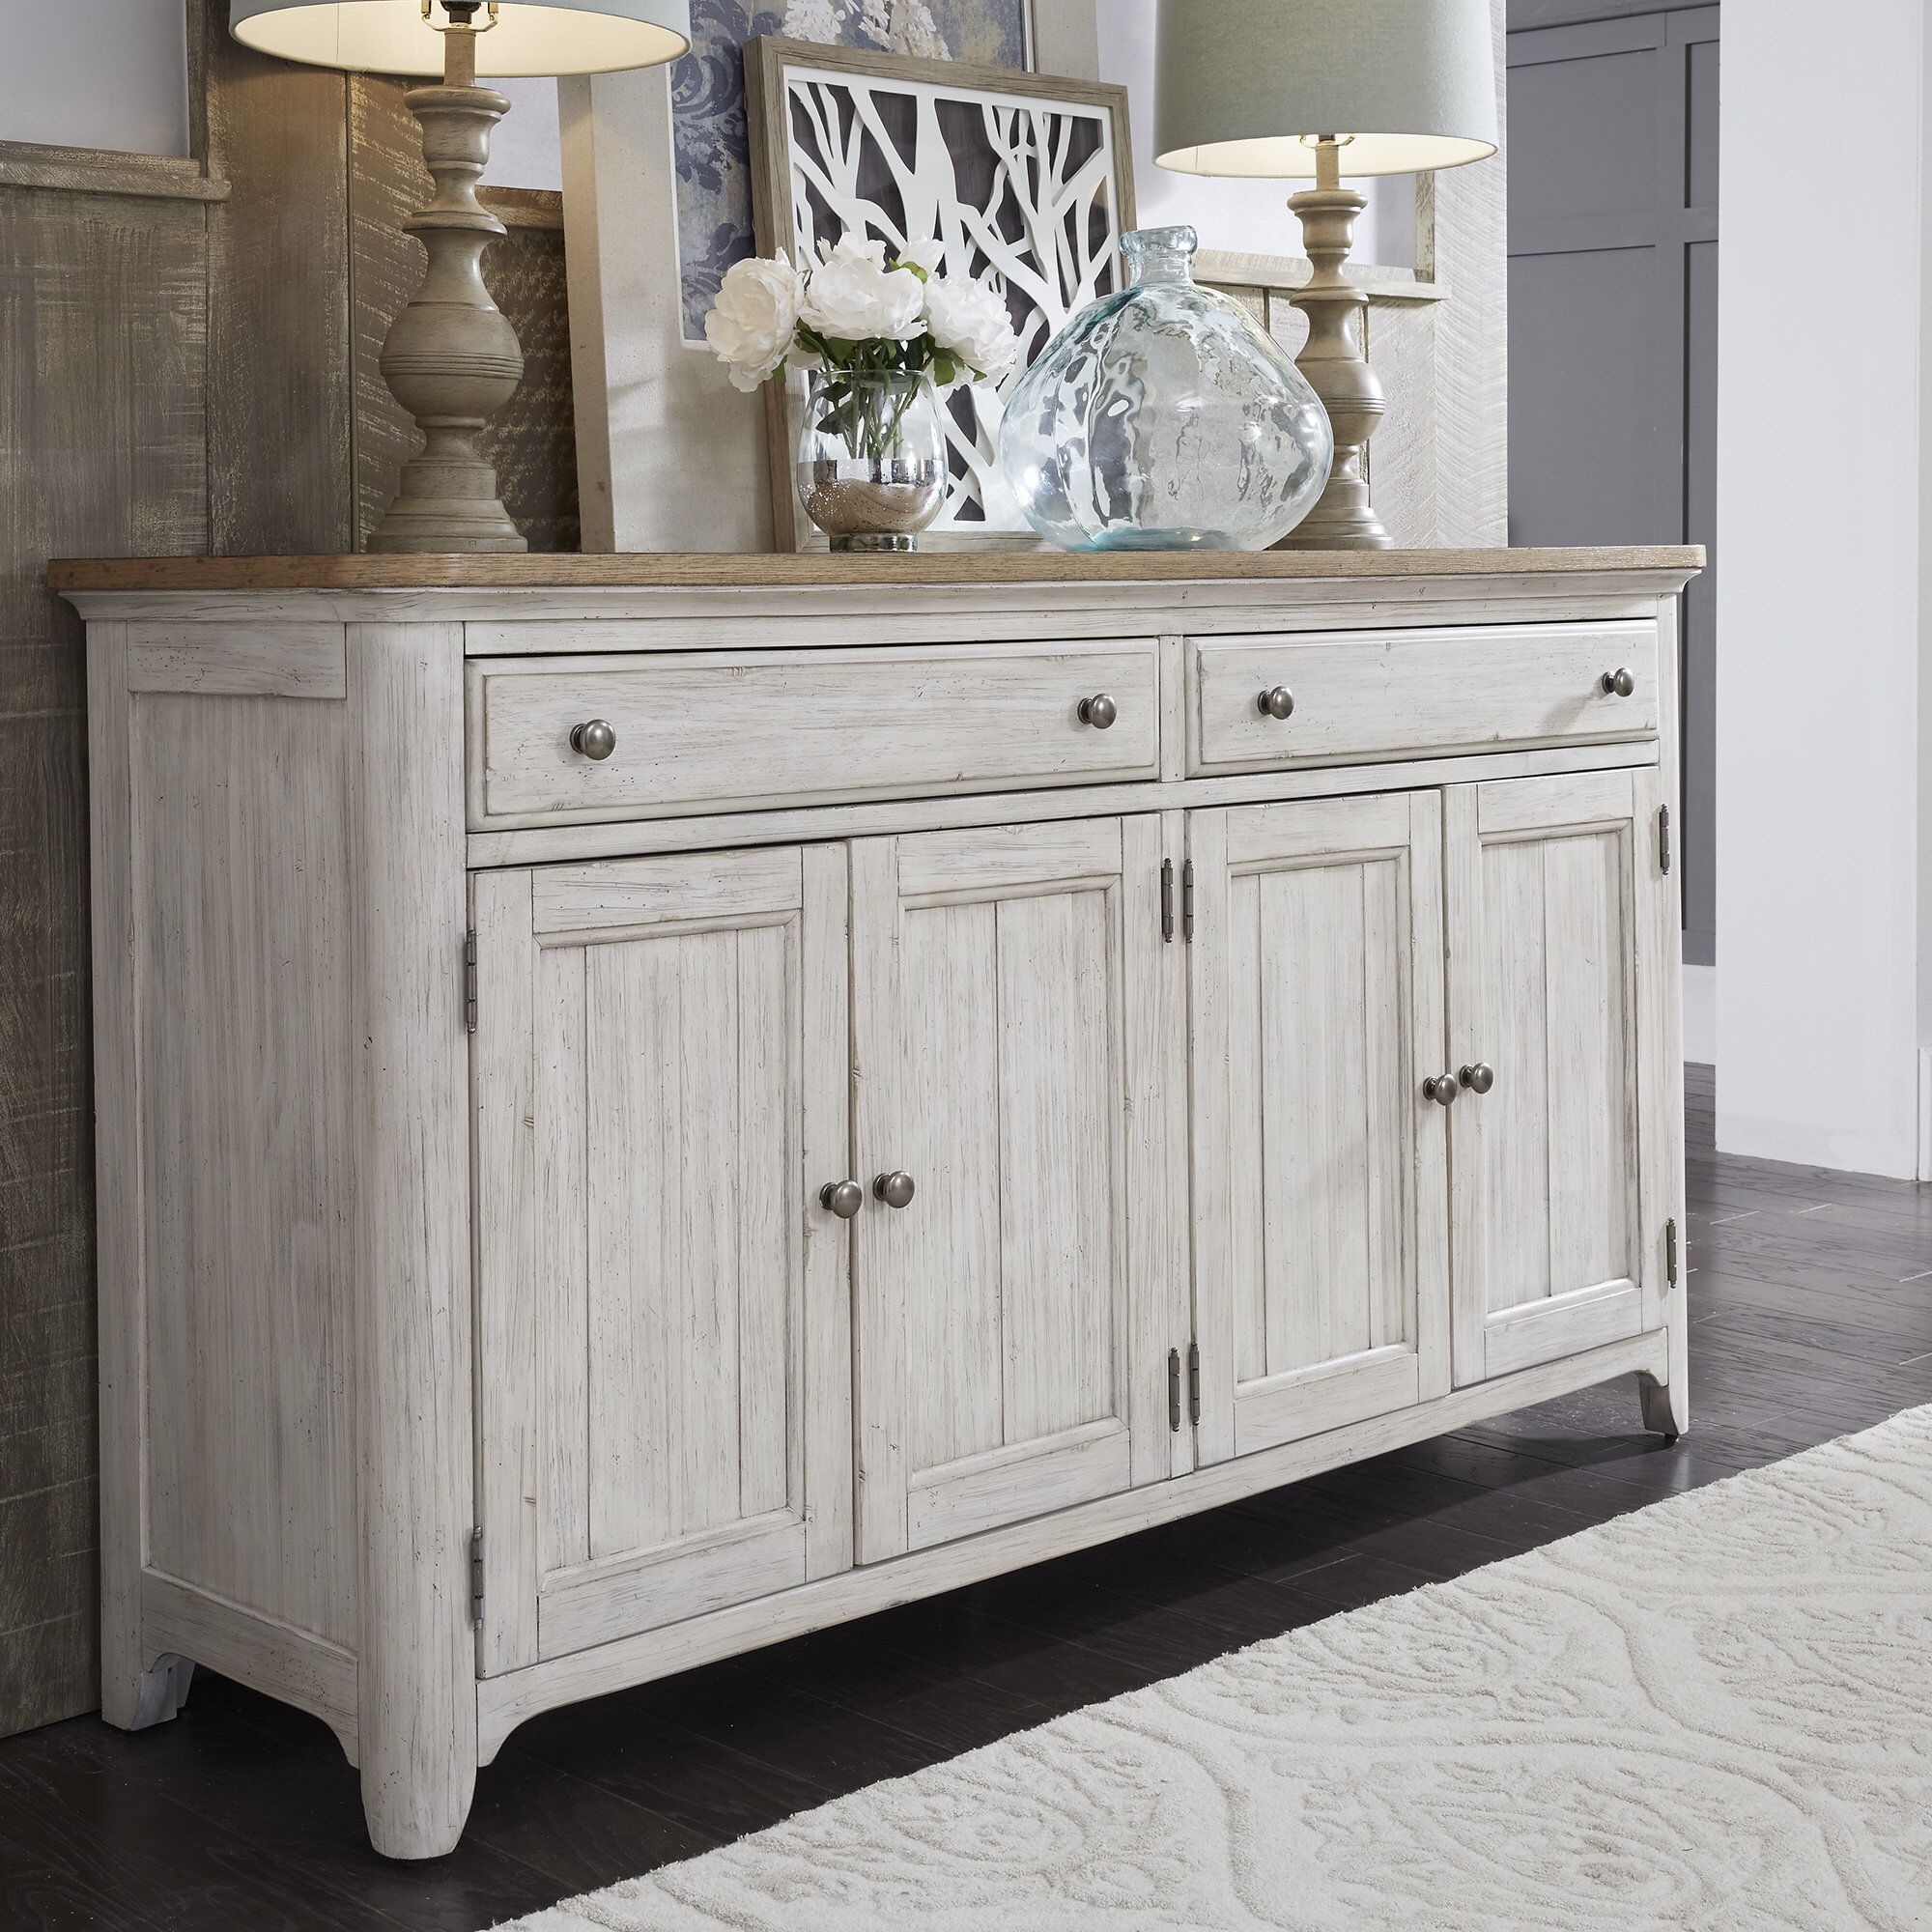 Konen Sideboard In 2019 | Dining Room | Sideboard, Furniture Within Newest Saguenay Sideboards (View 16 of 20)